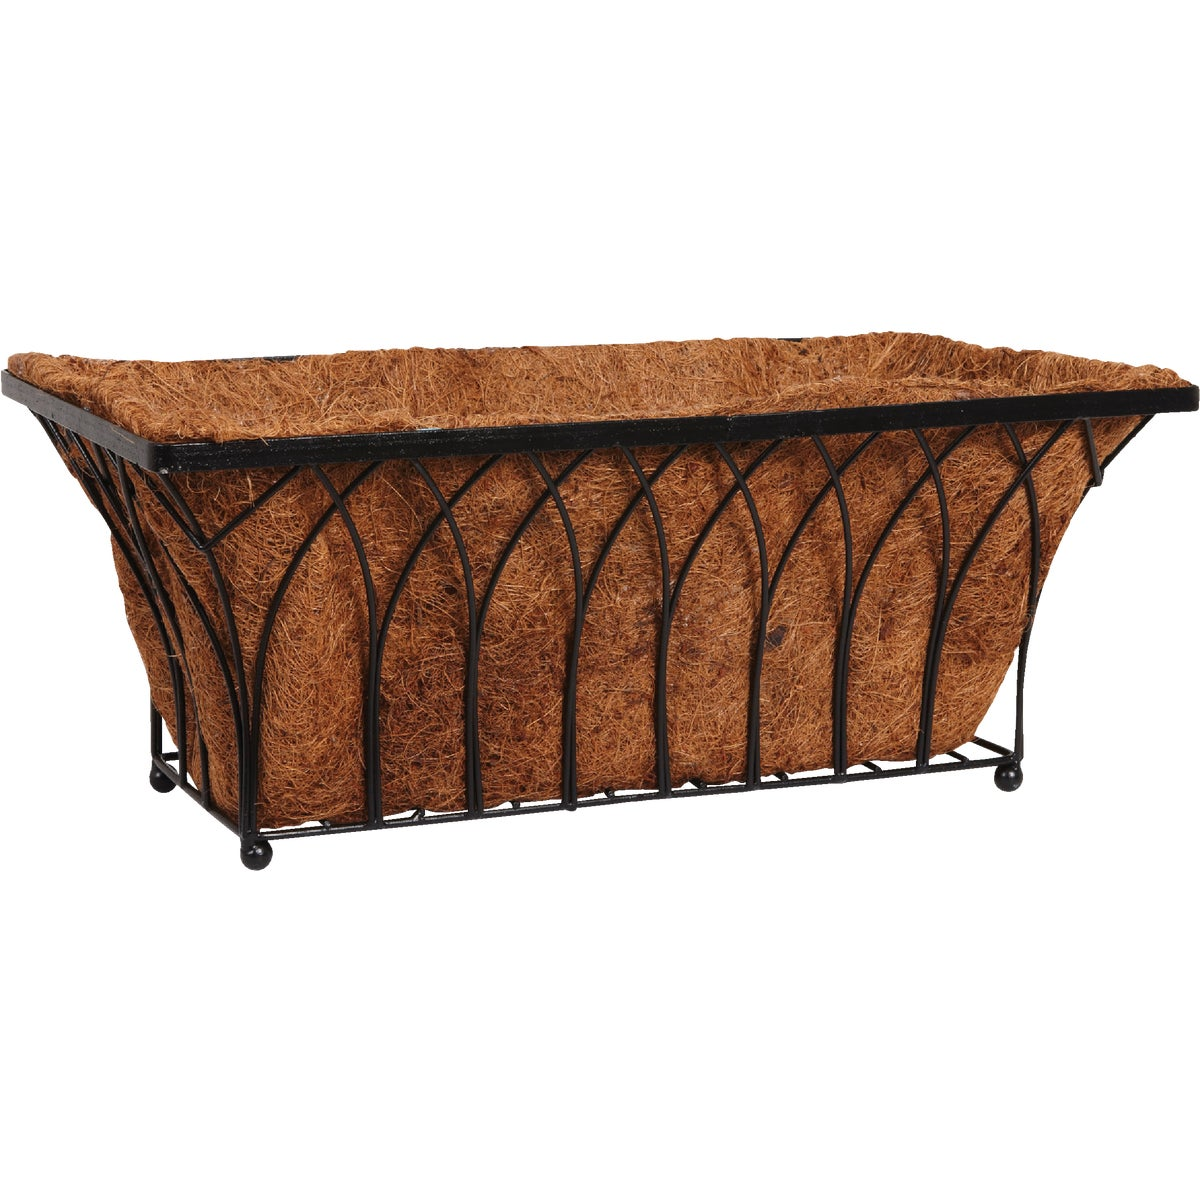 "22"" W/LNR PLANTER TROUGH - TPB221211 by Do it Best"